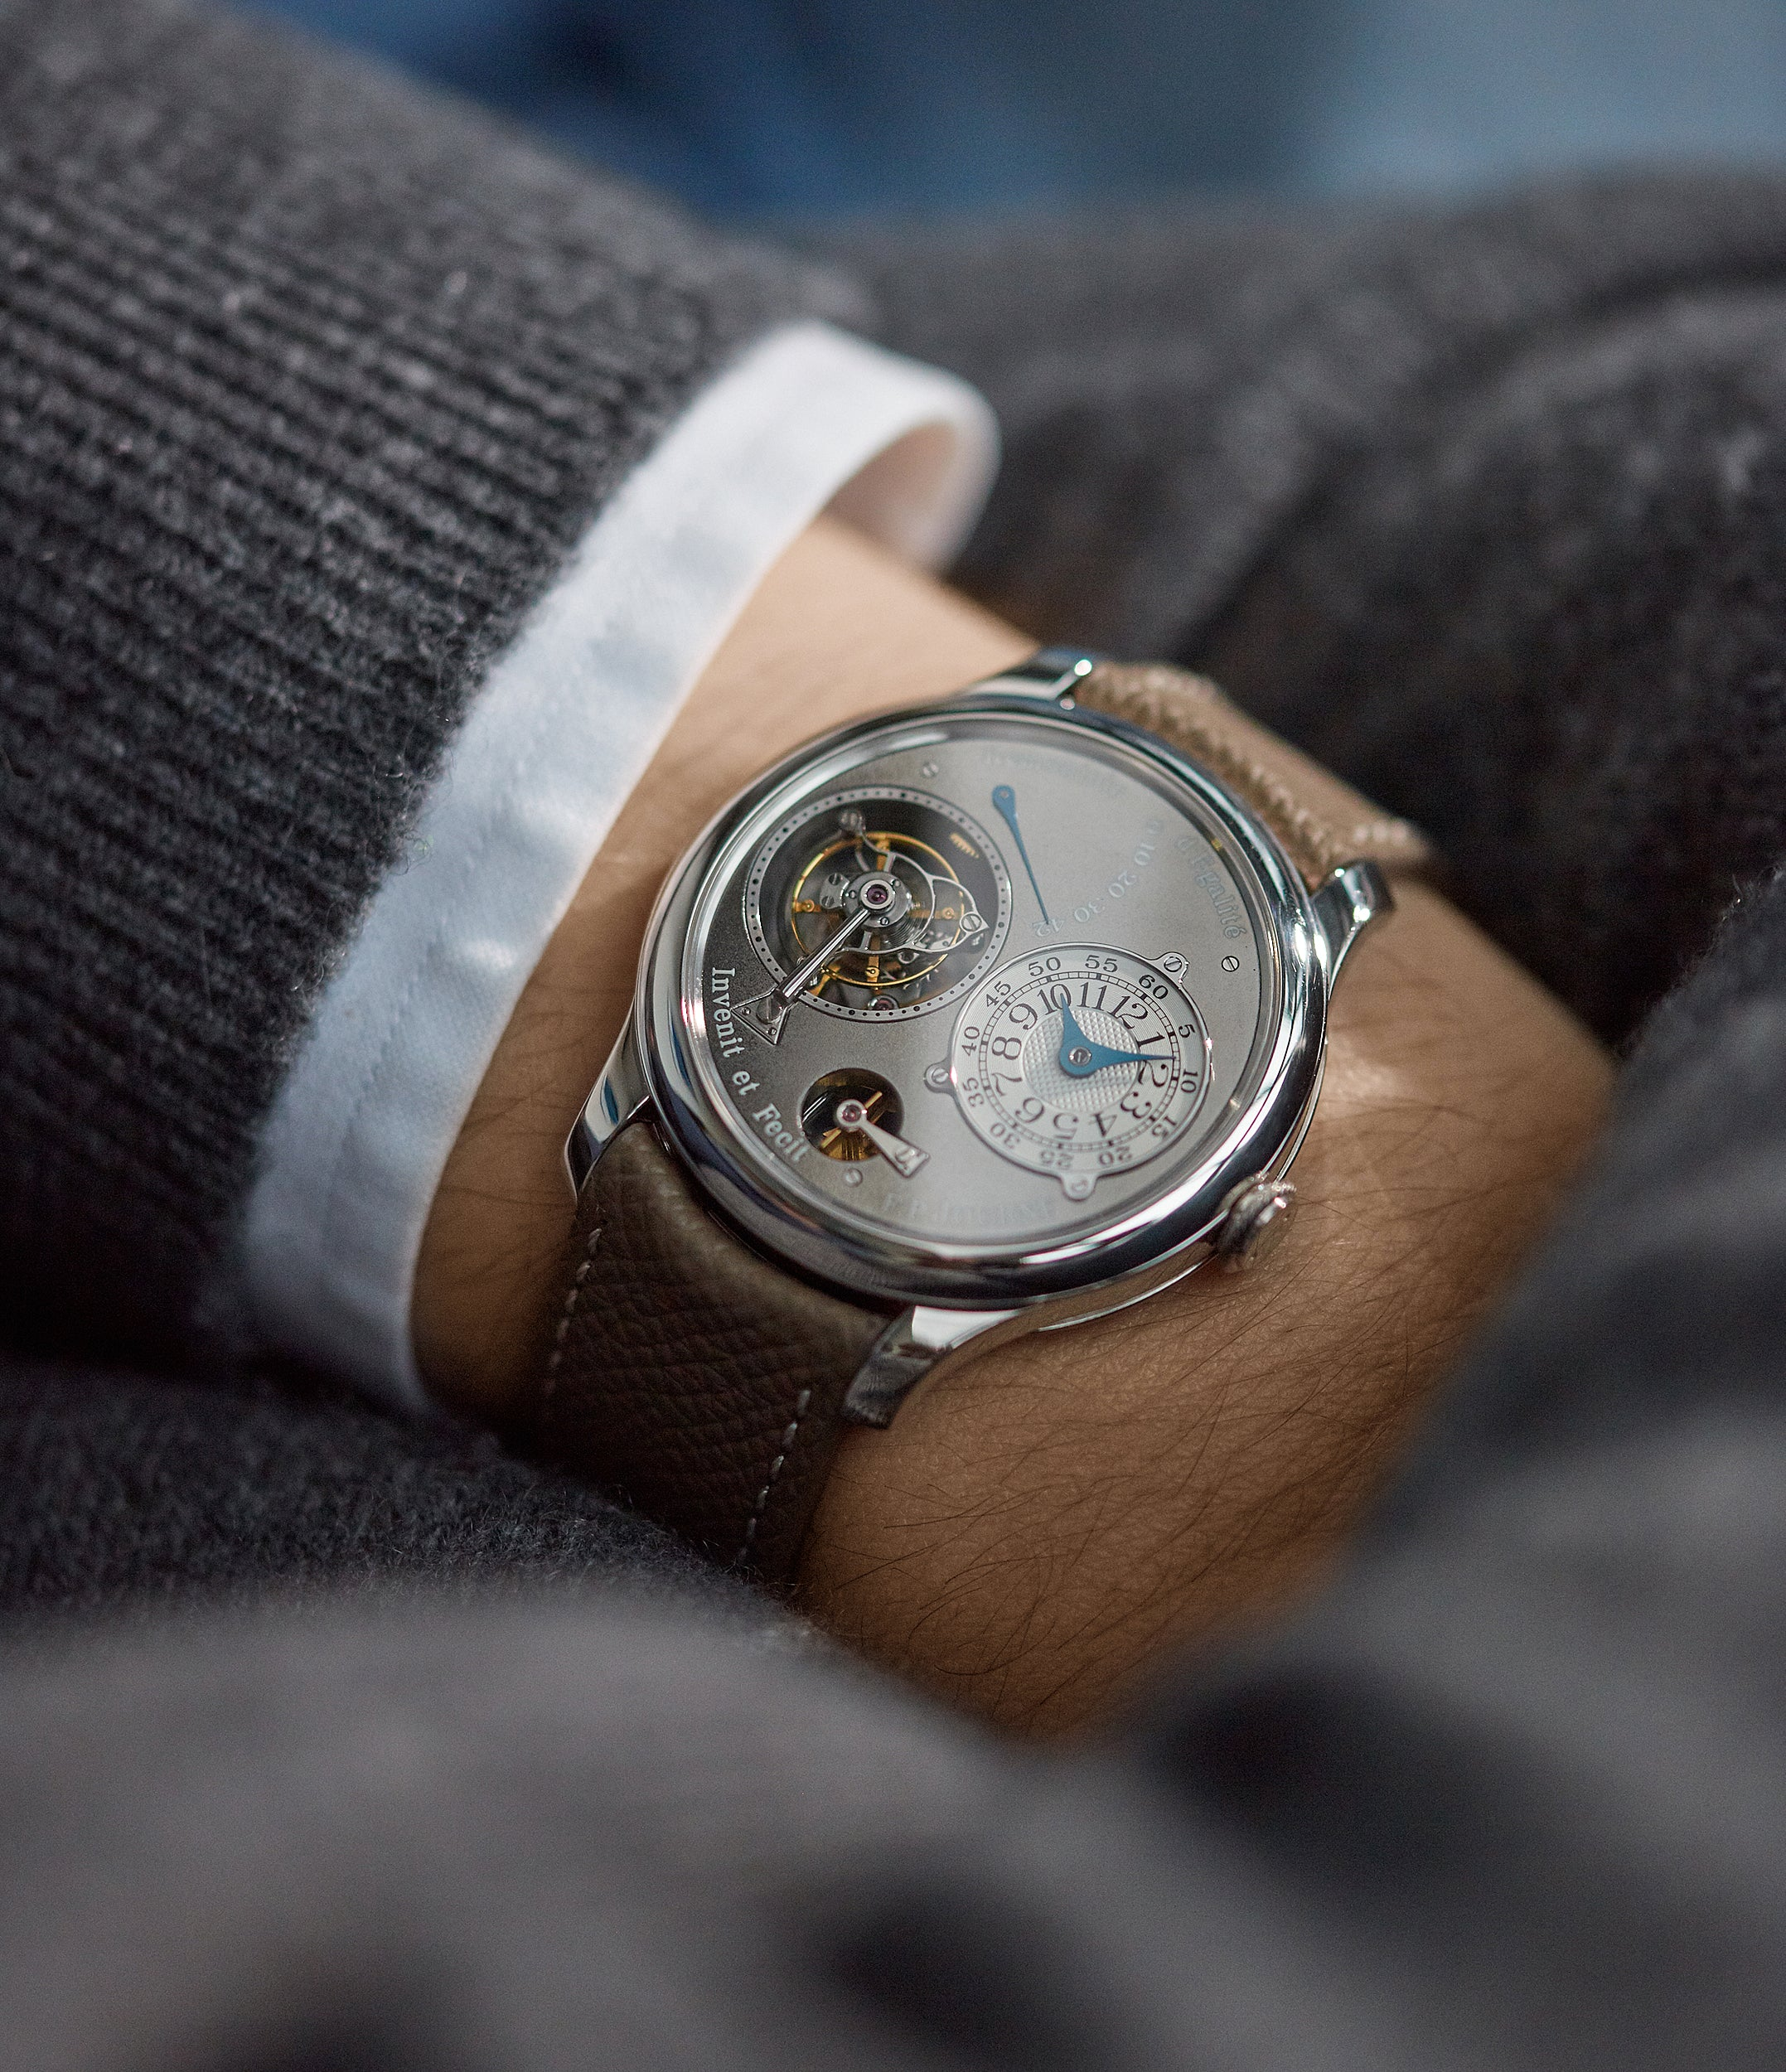 shop pre-owned F. P. Journe Tourbillon Remontoire Souverain rhutenium dial brass movement pre-owned watch at A Collected Man London specialist independent watchmakers